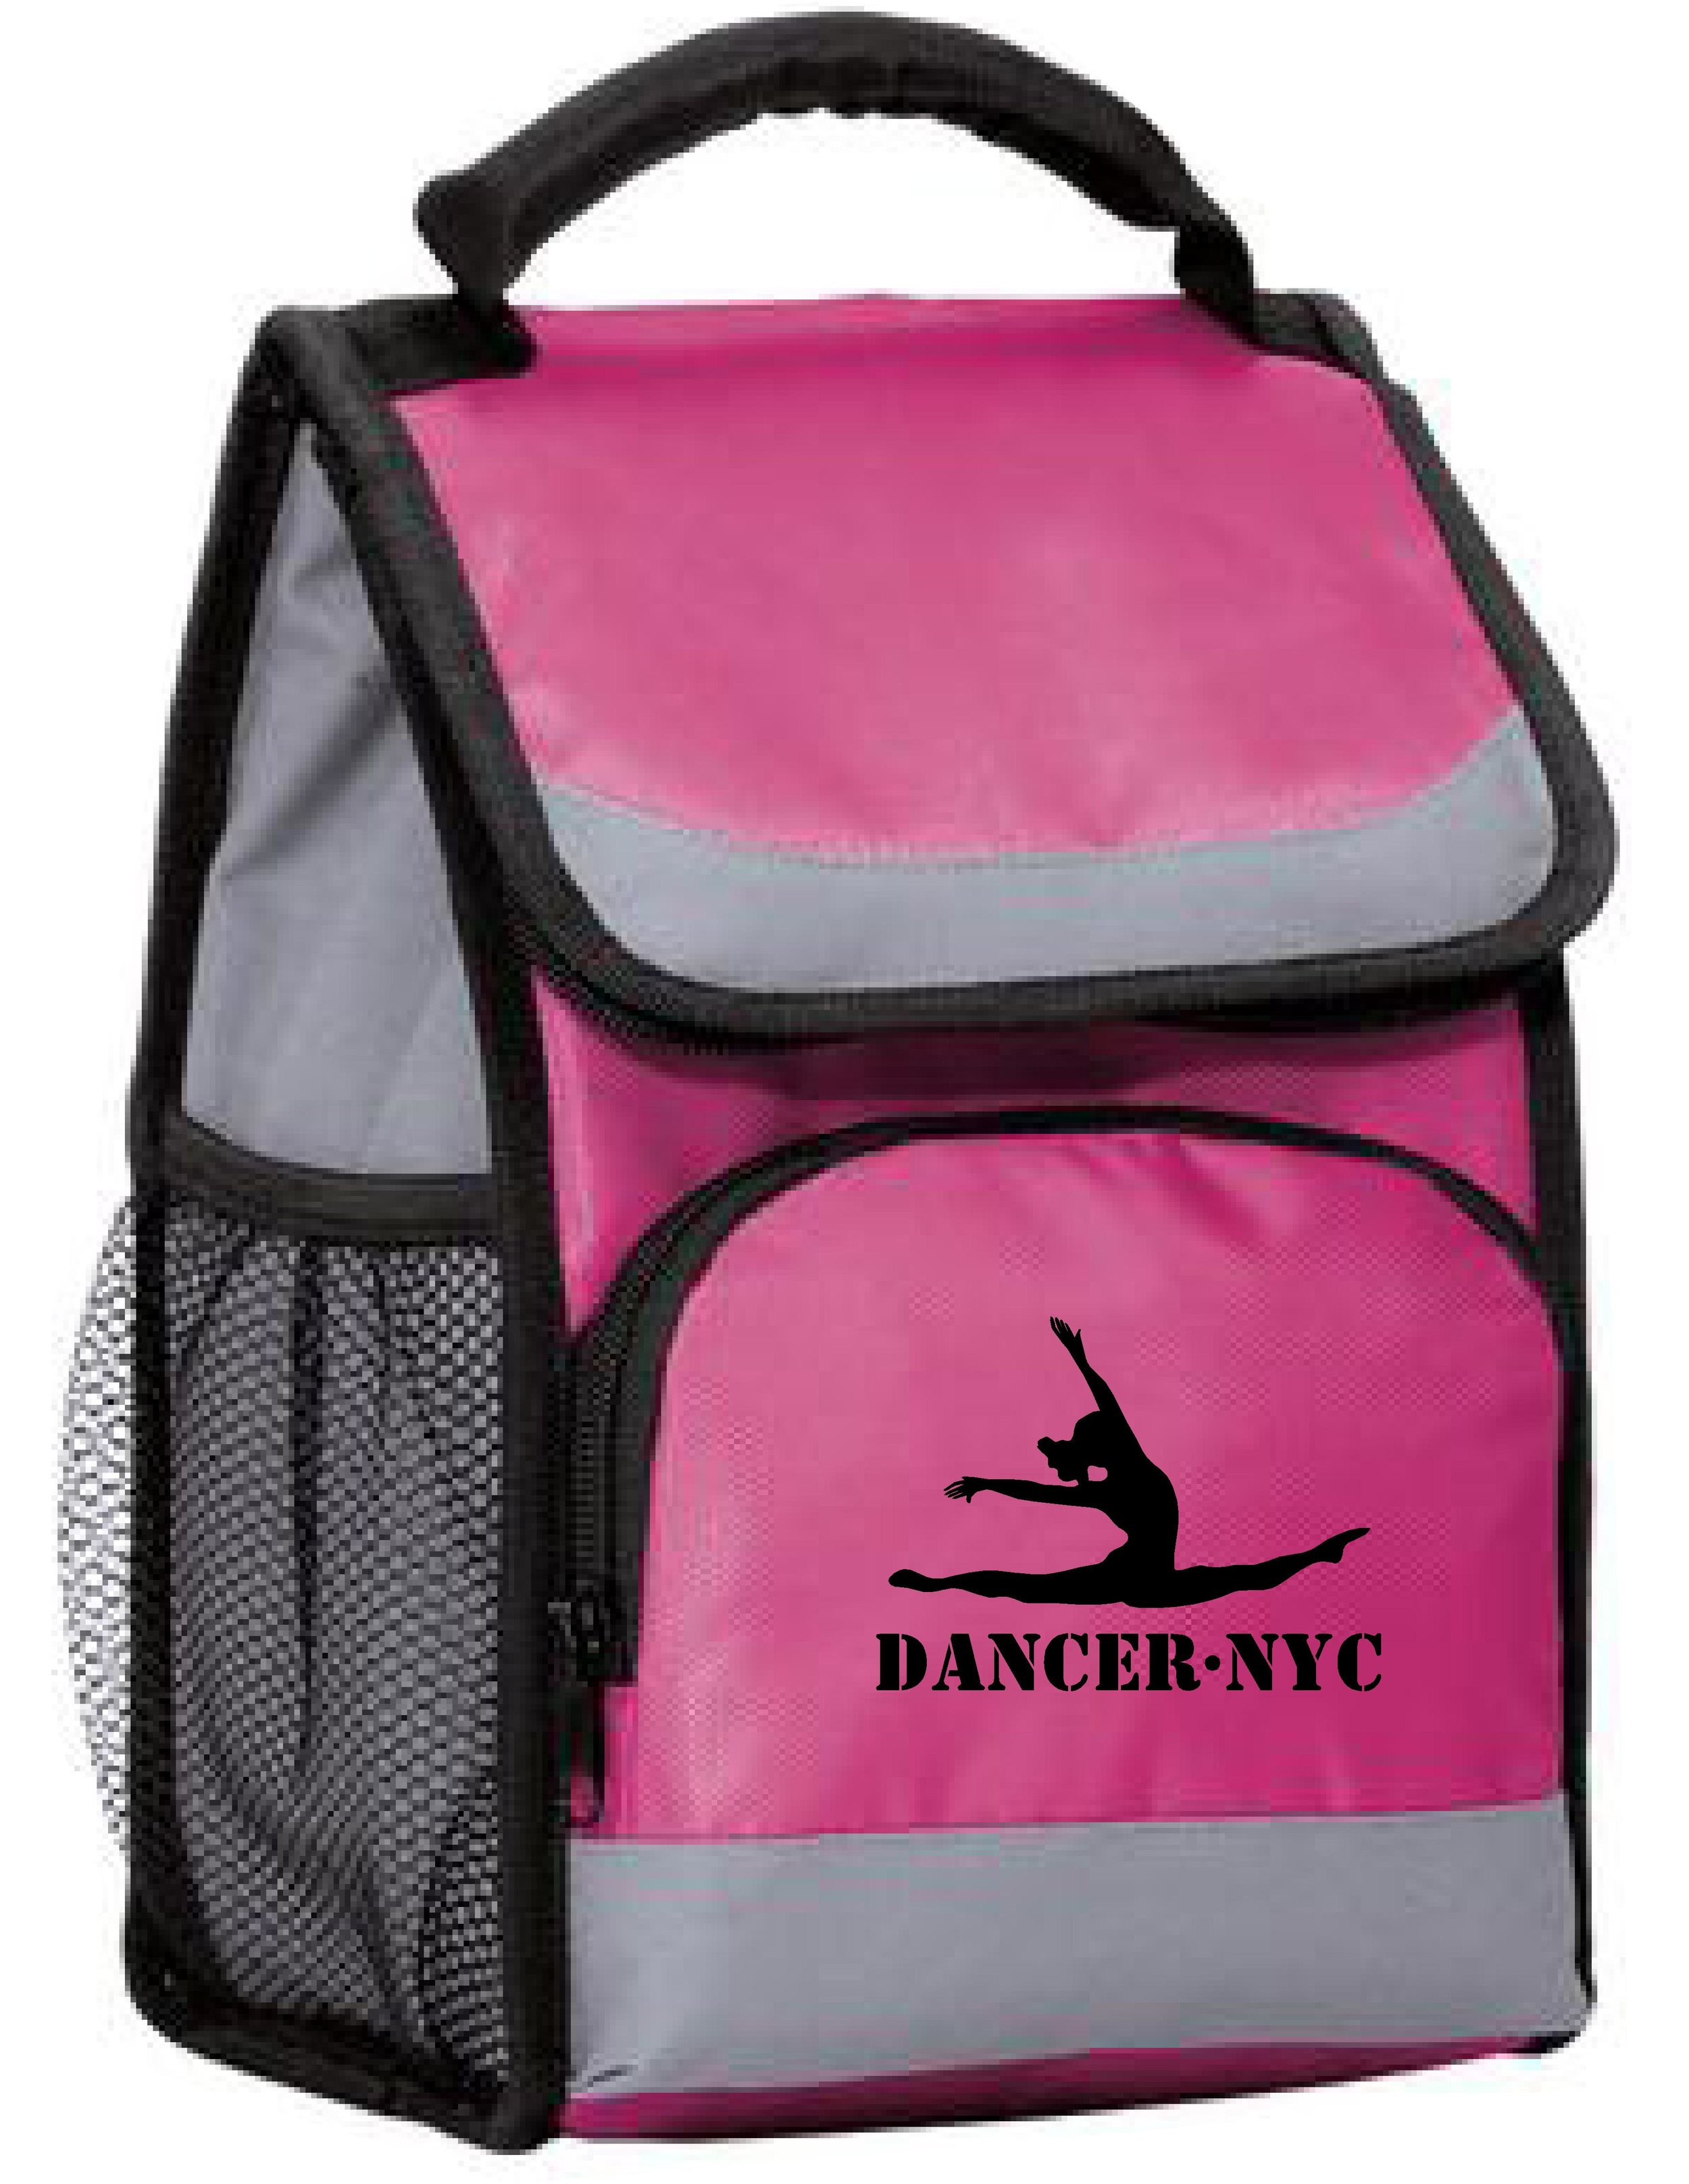 Dancer.NYC Embroidered Insulated Lunch Bag & Mini Cooler